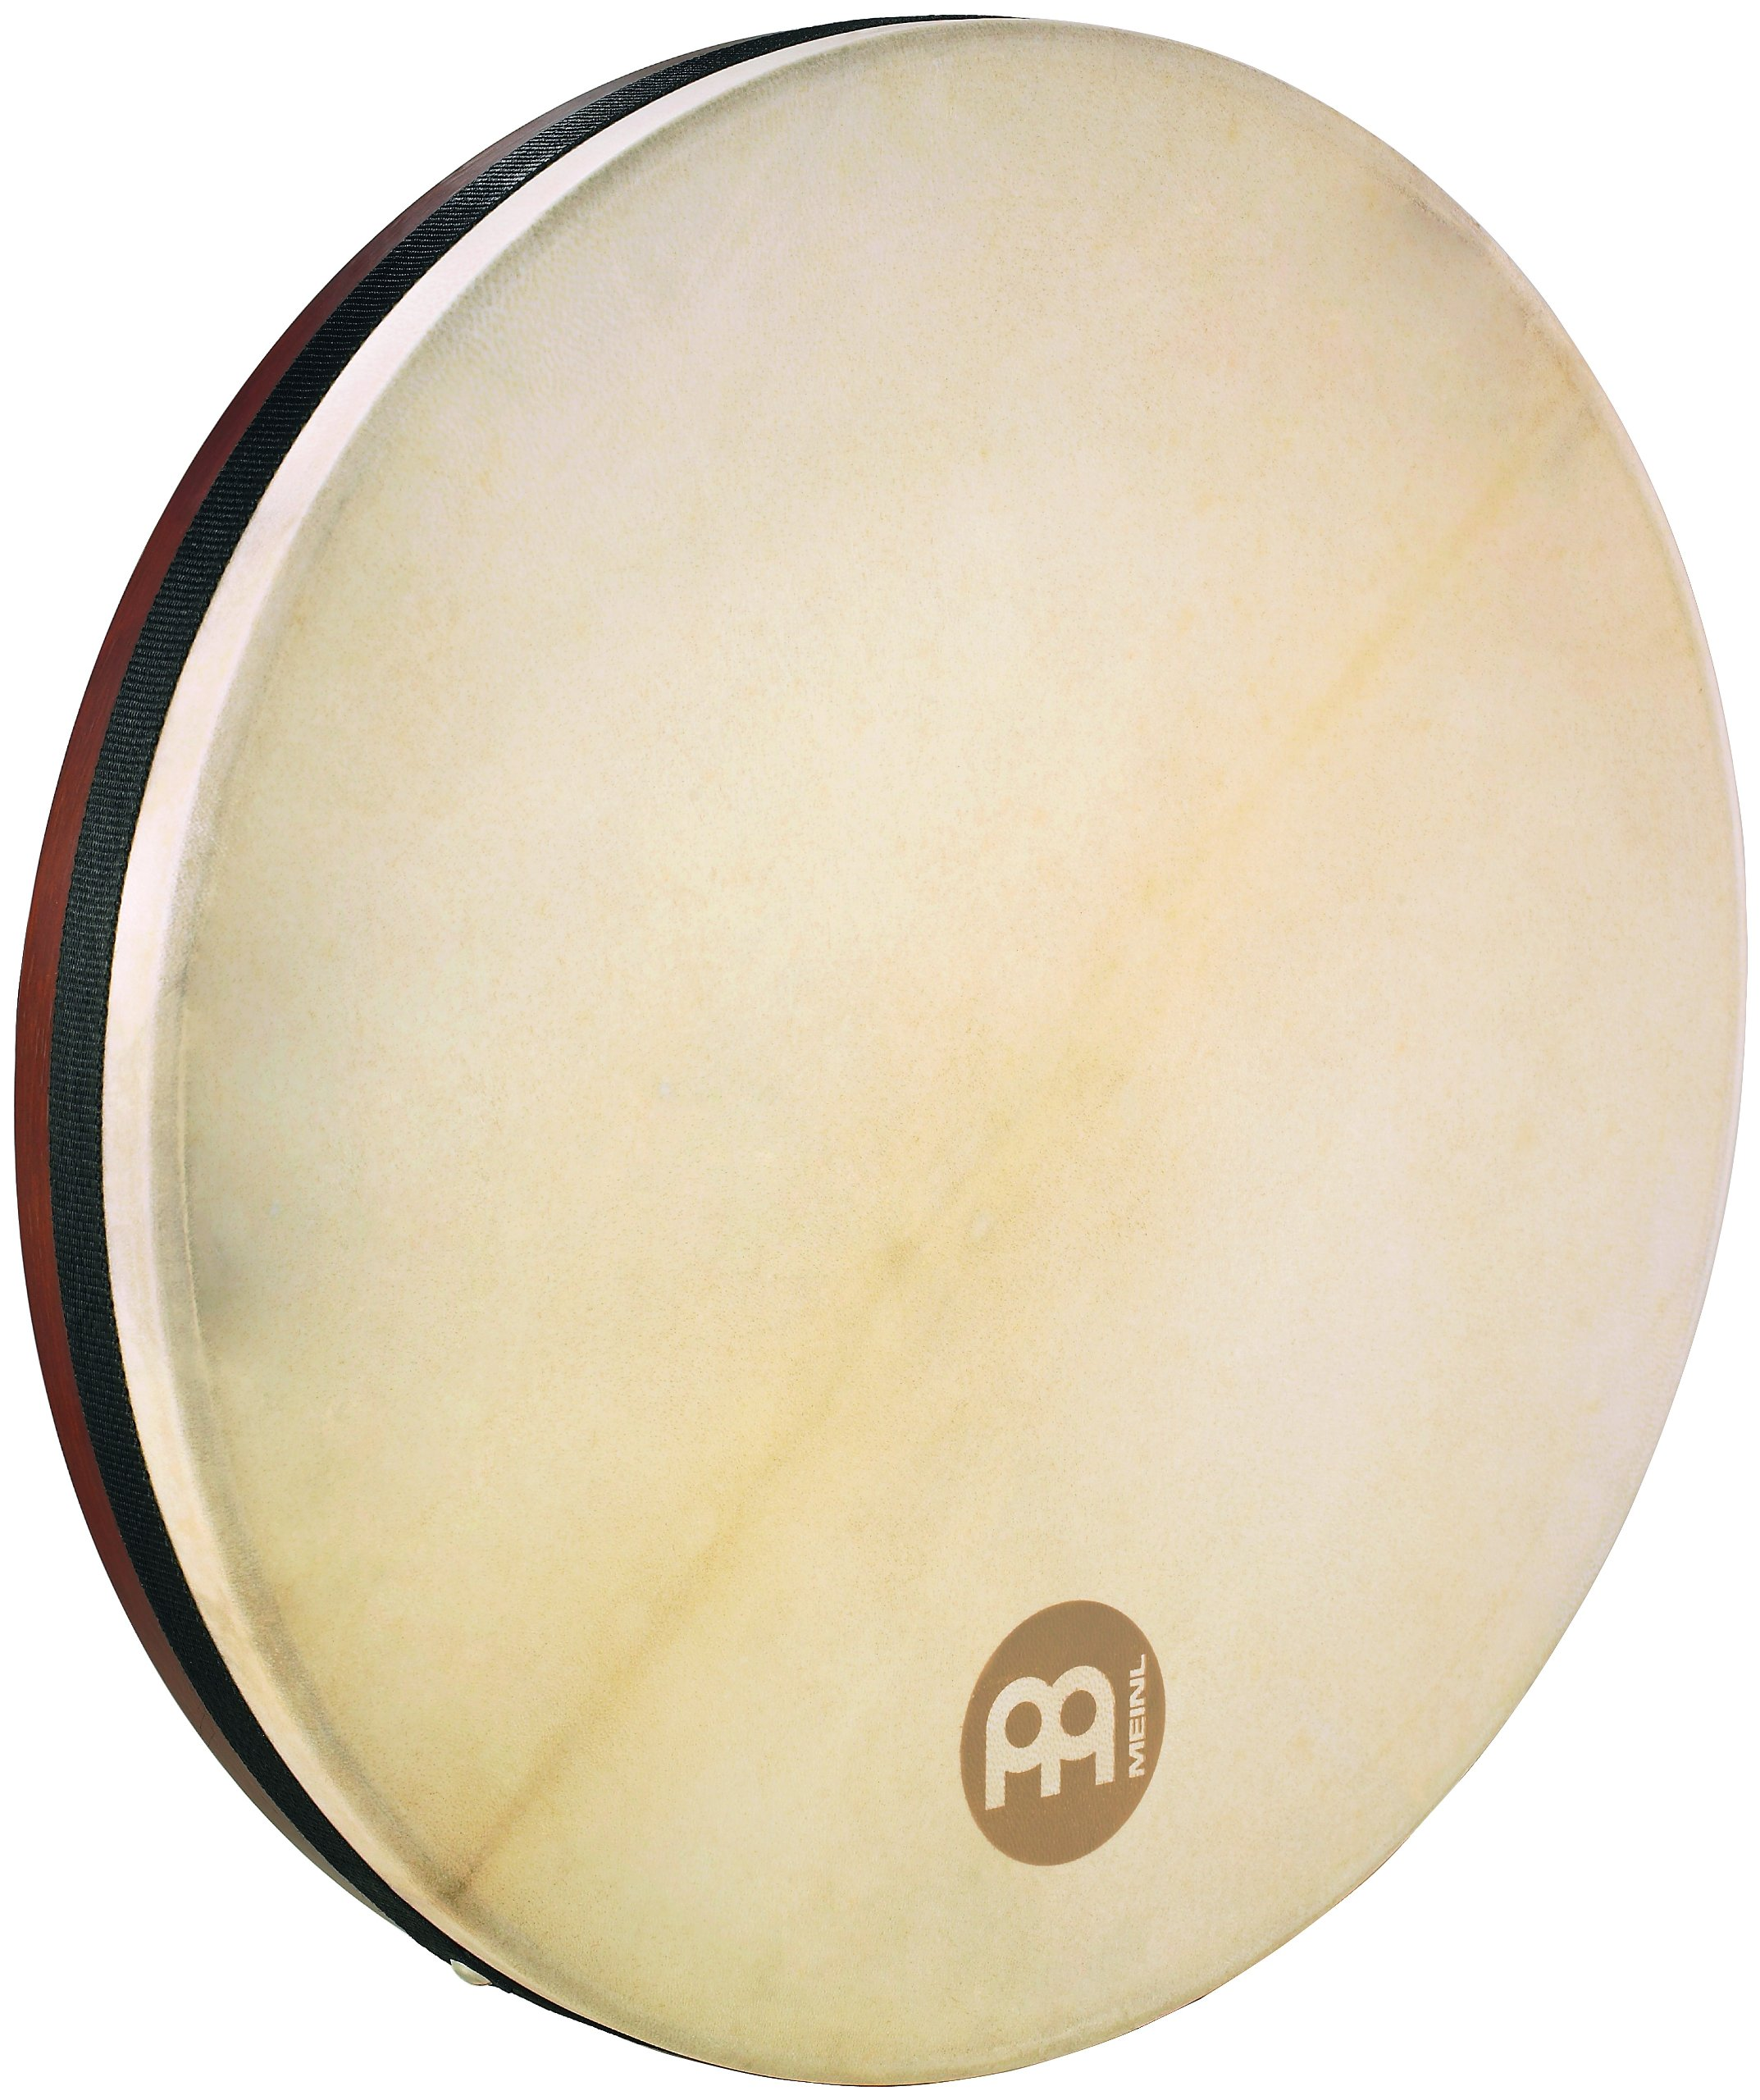 Meinl Percussion 18'' Frame Drum, Tar - NOT MADE IN CHINA - Goat Skin Head, African Brown Finish, 2-YEAR WARRANTY (FD18T) by Meinl Percussion